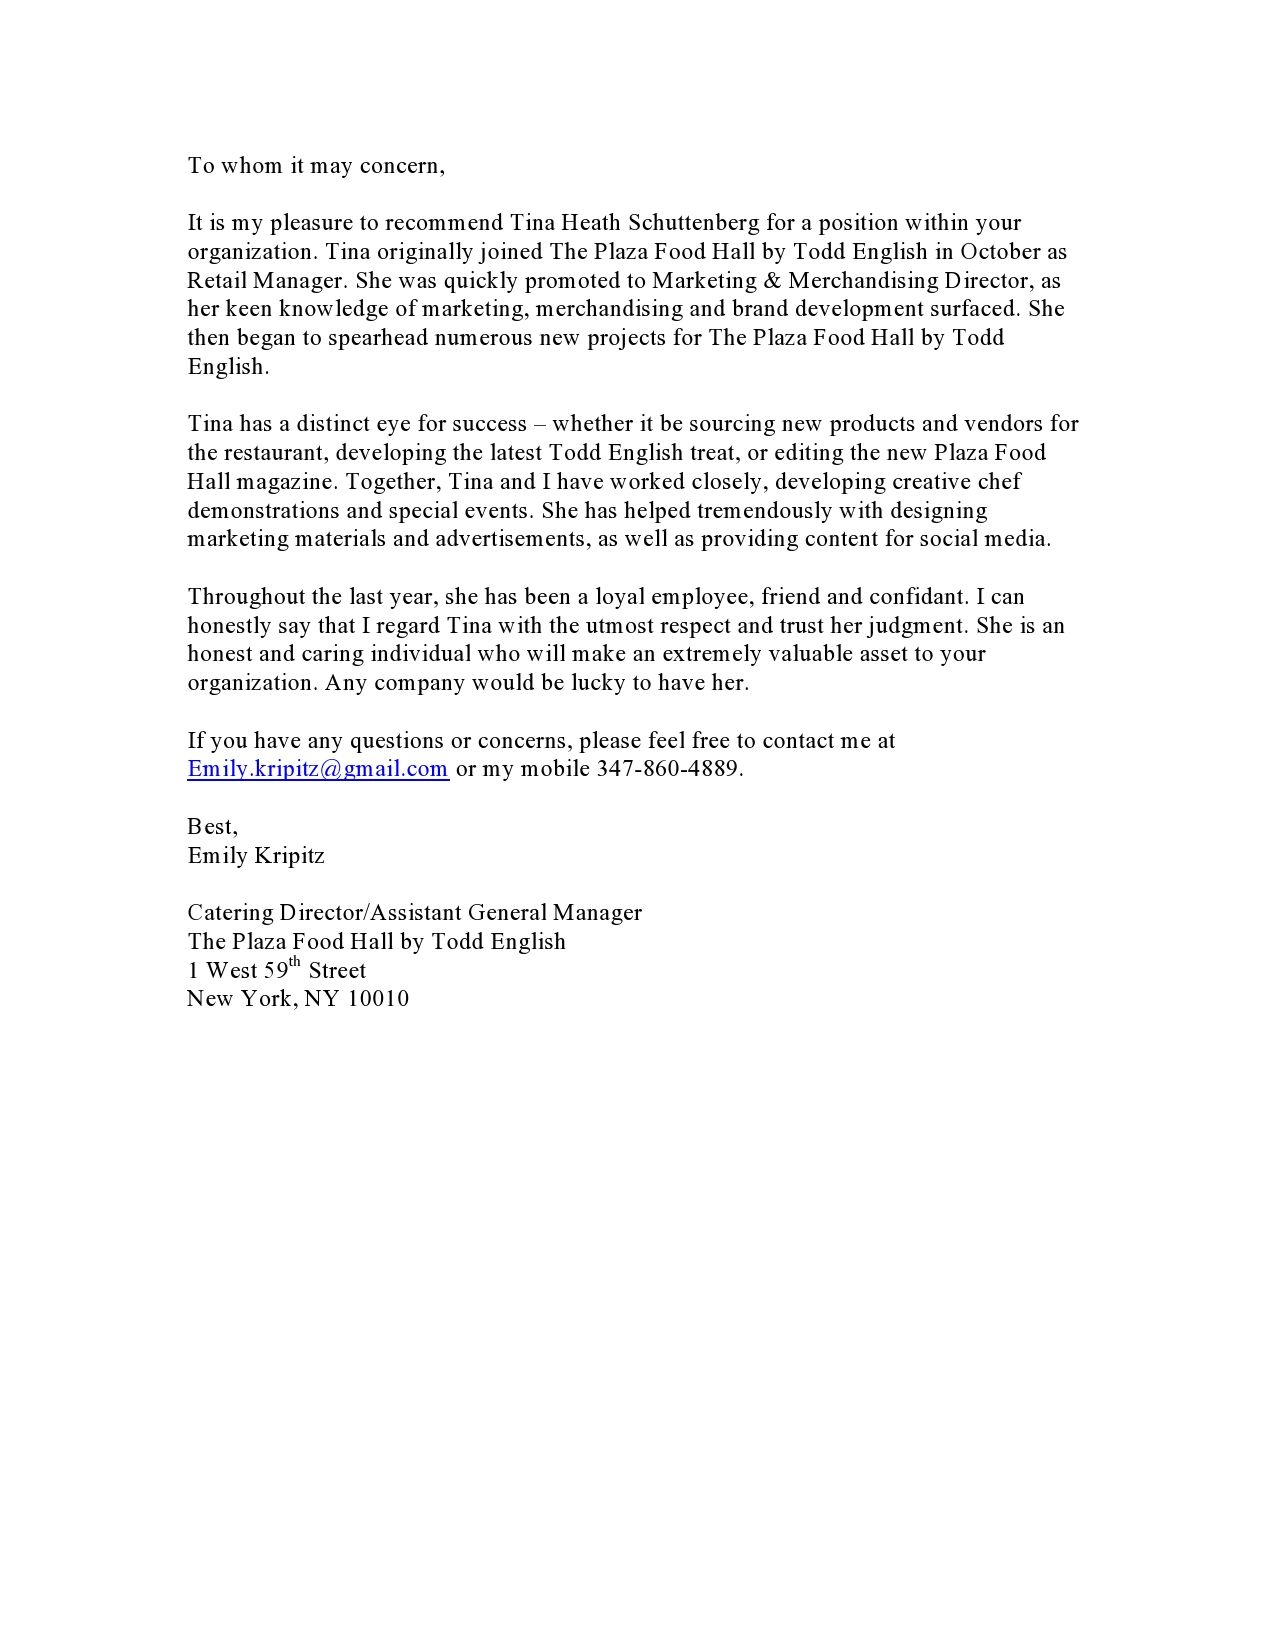 reference letter from emily former catering director at todd english food hall